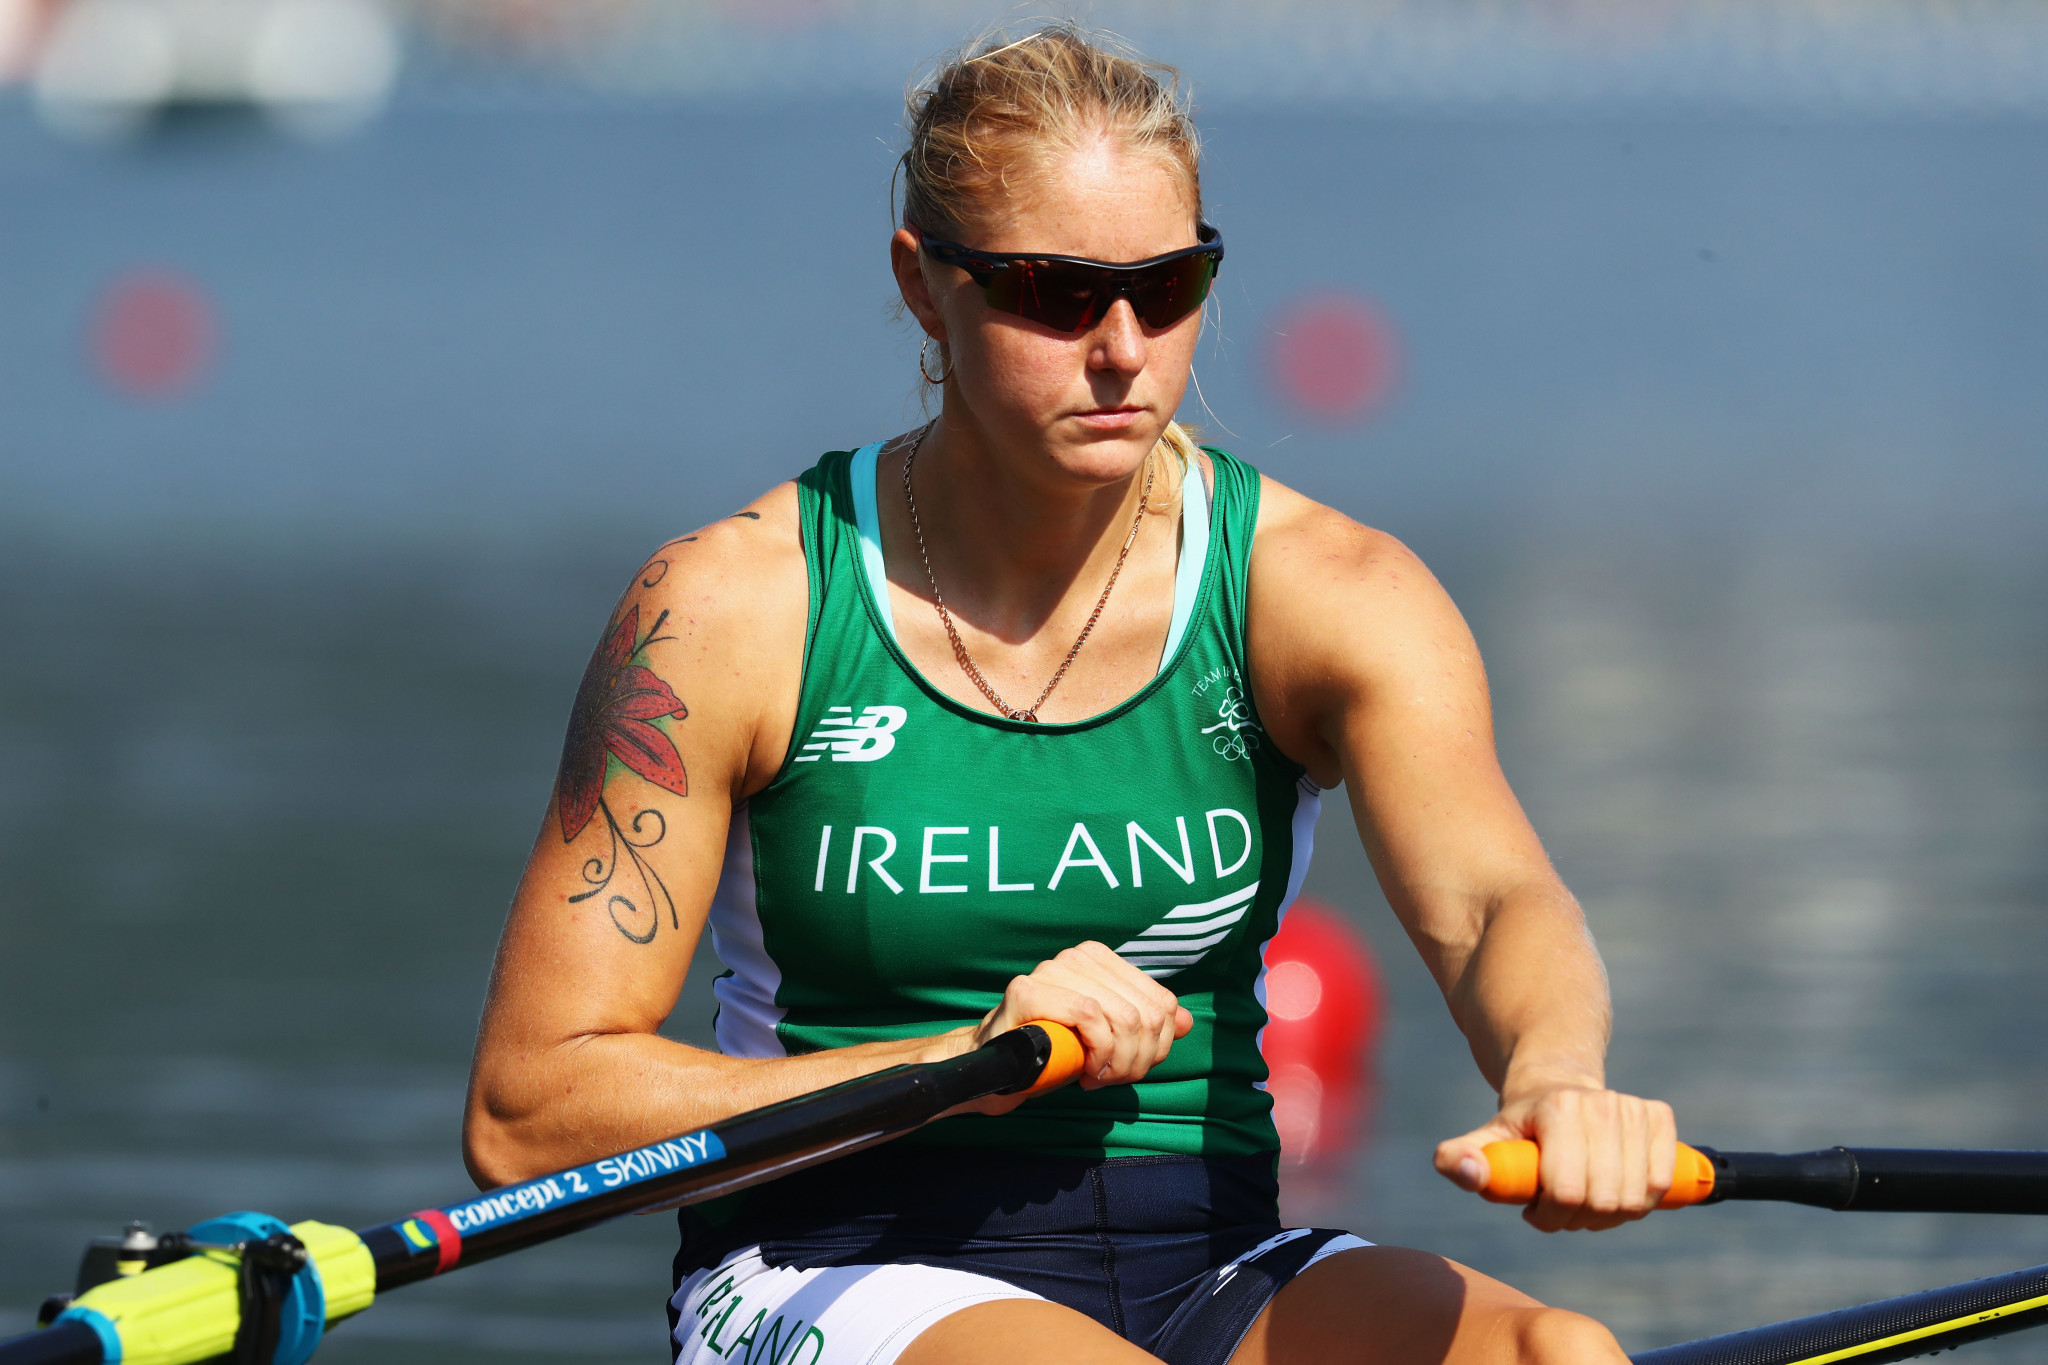 Gmelin's home hopes fall as Ireland's Puspure takes her European title in Lucerne